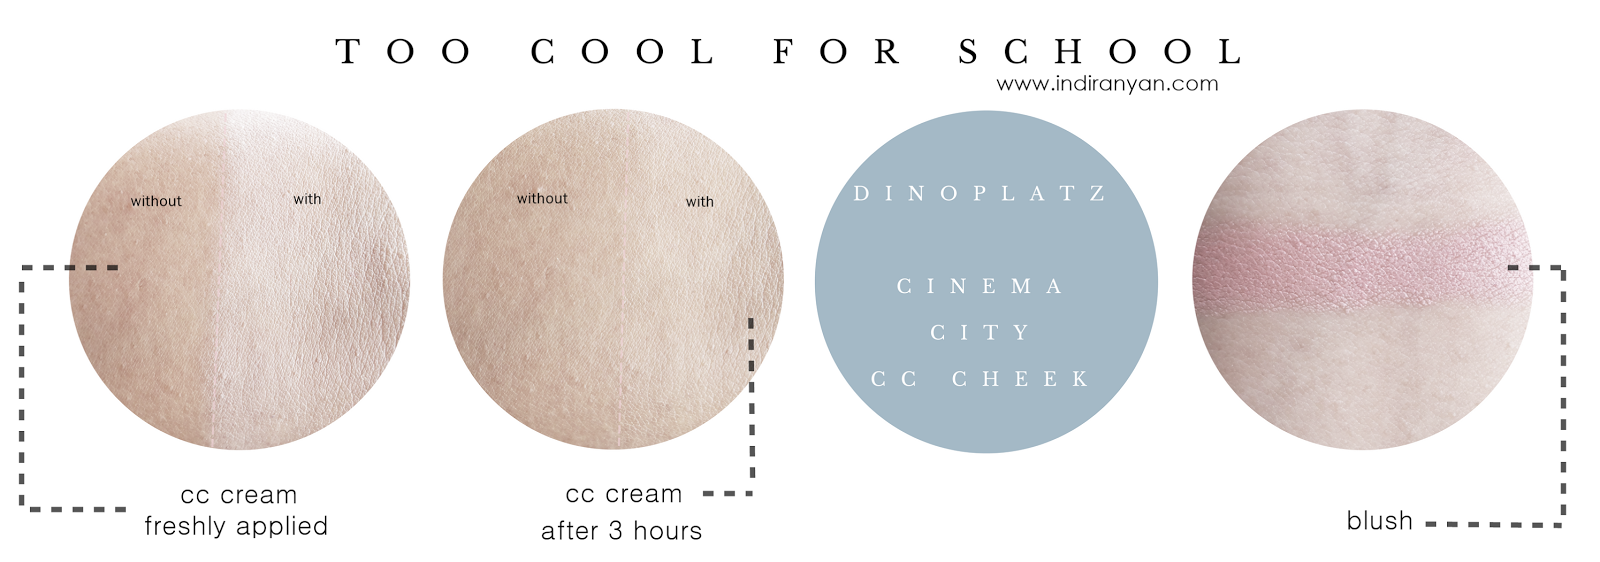 too-cool-for-school-dinoplatz-cinema-city-swatch